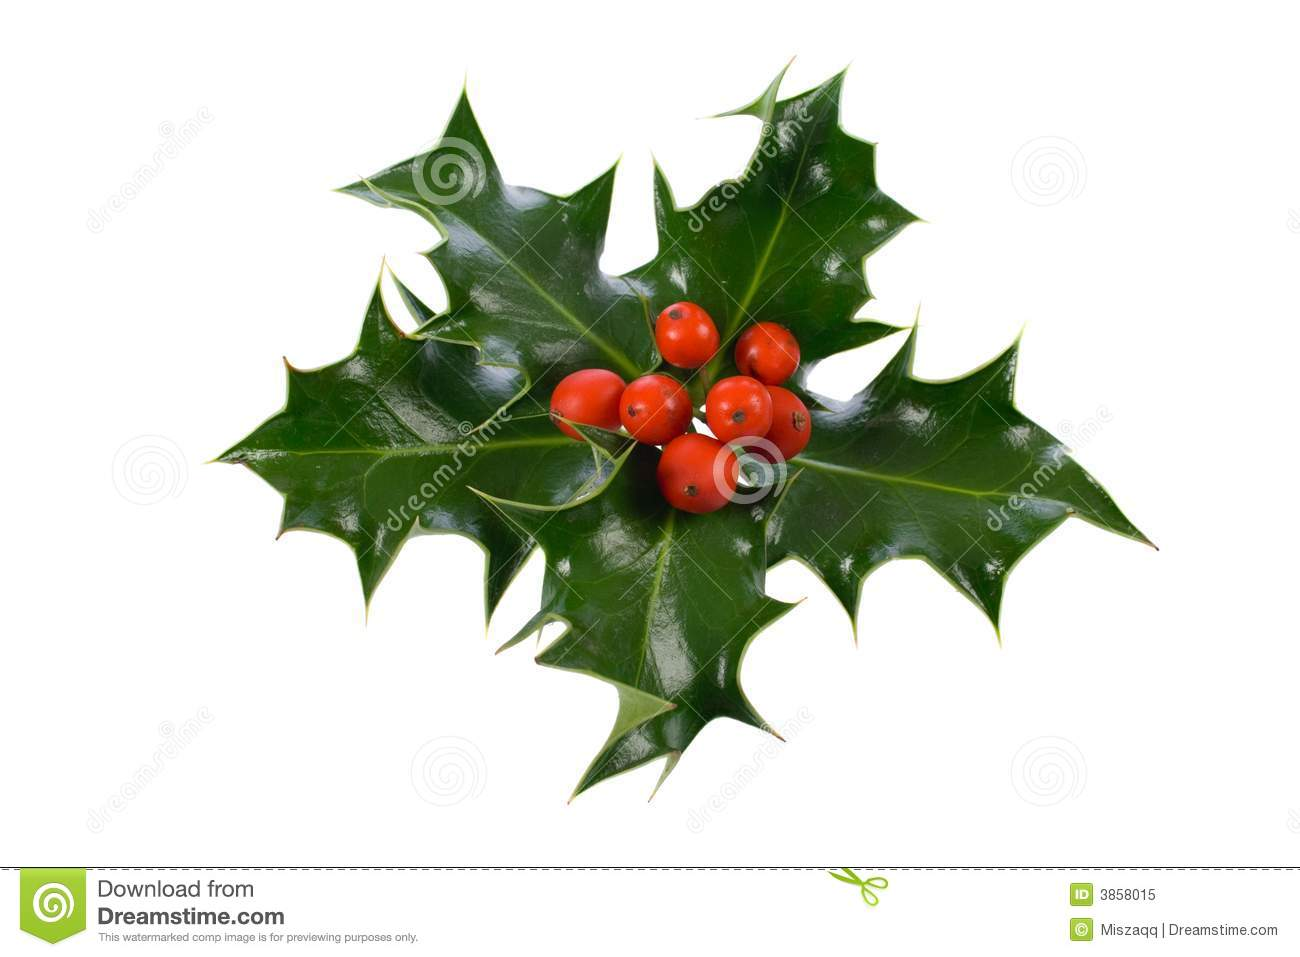 Ilex houx d coration de no l photo libre de droits for Image de decoration de noel